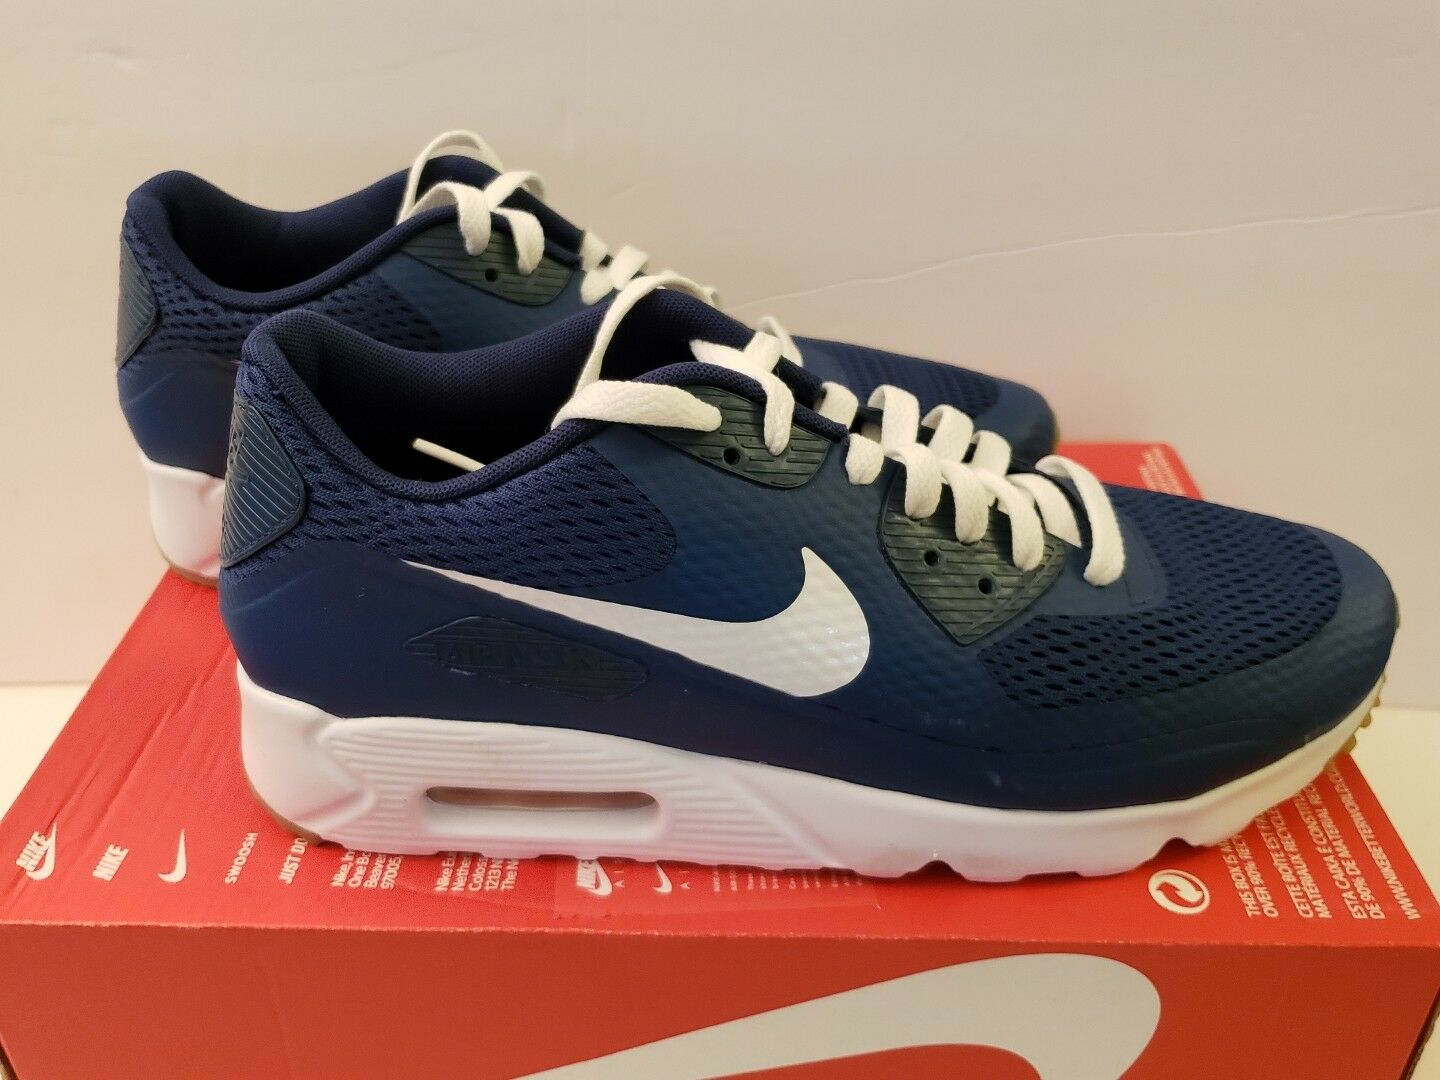 072a2f8c68 Nike Air Max 90 ULTRA ESSENTIAL 9.5 Premium 819474-402 Mens shoes Size  blueee ovamuc4803-Athletic Shoes